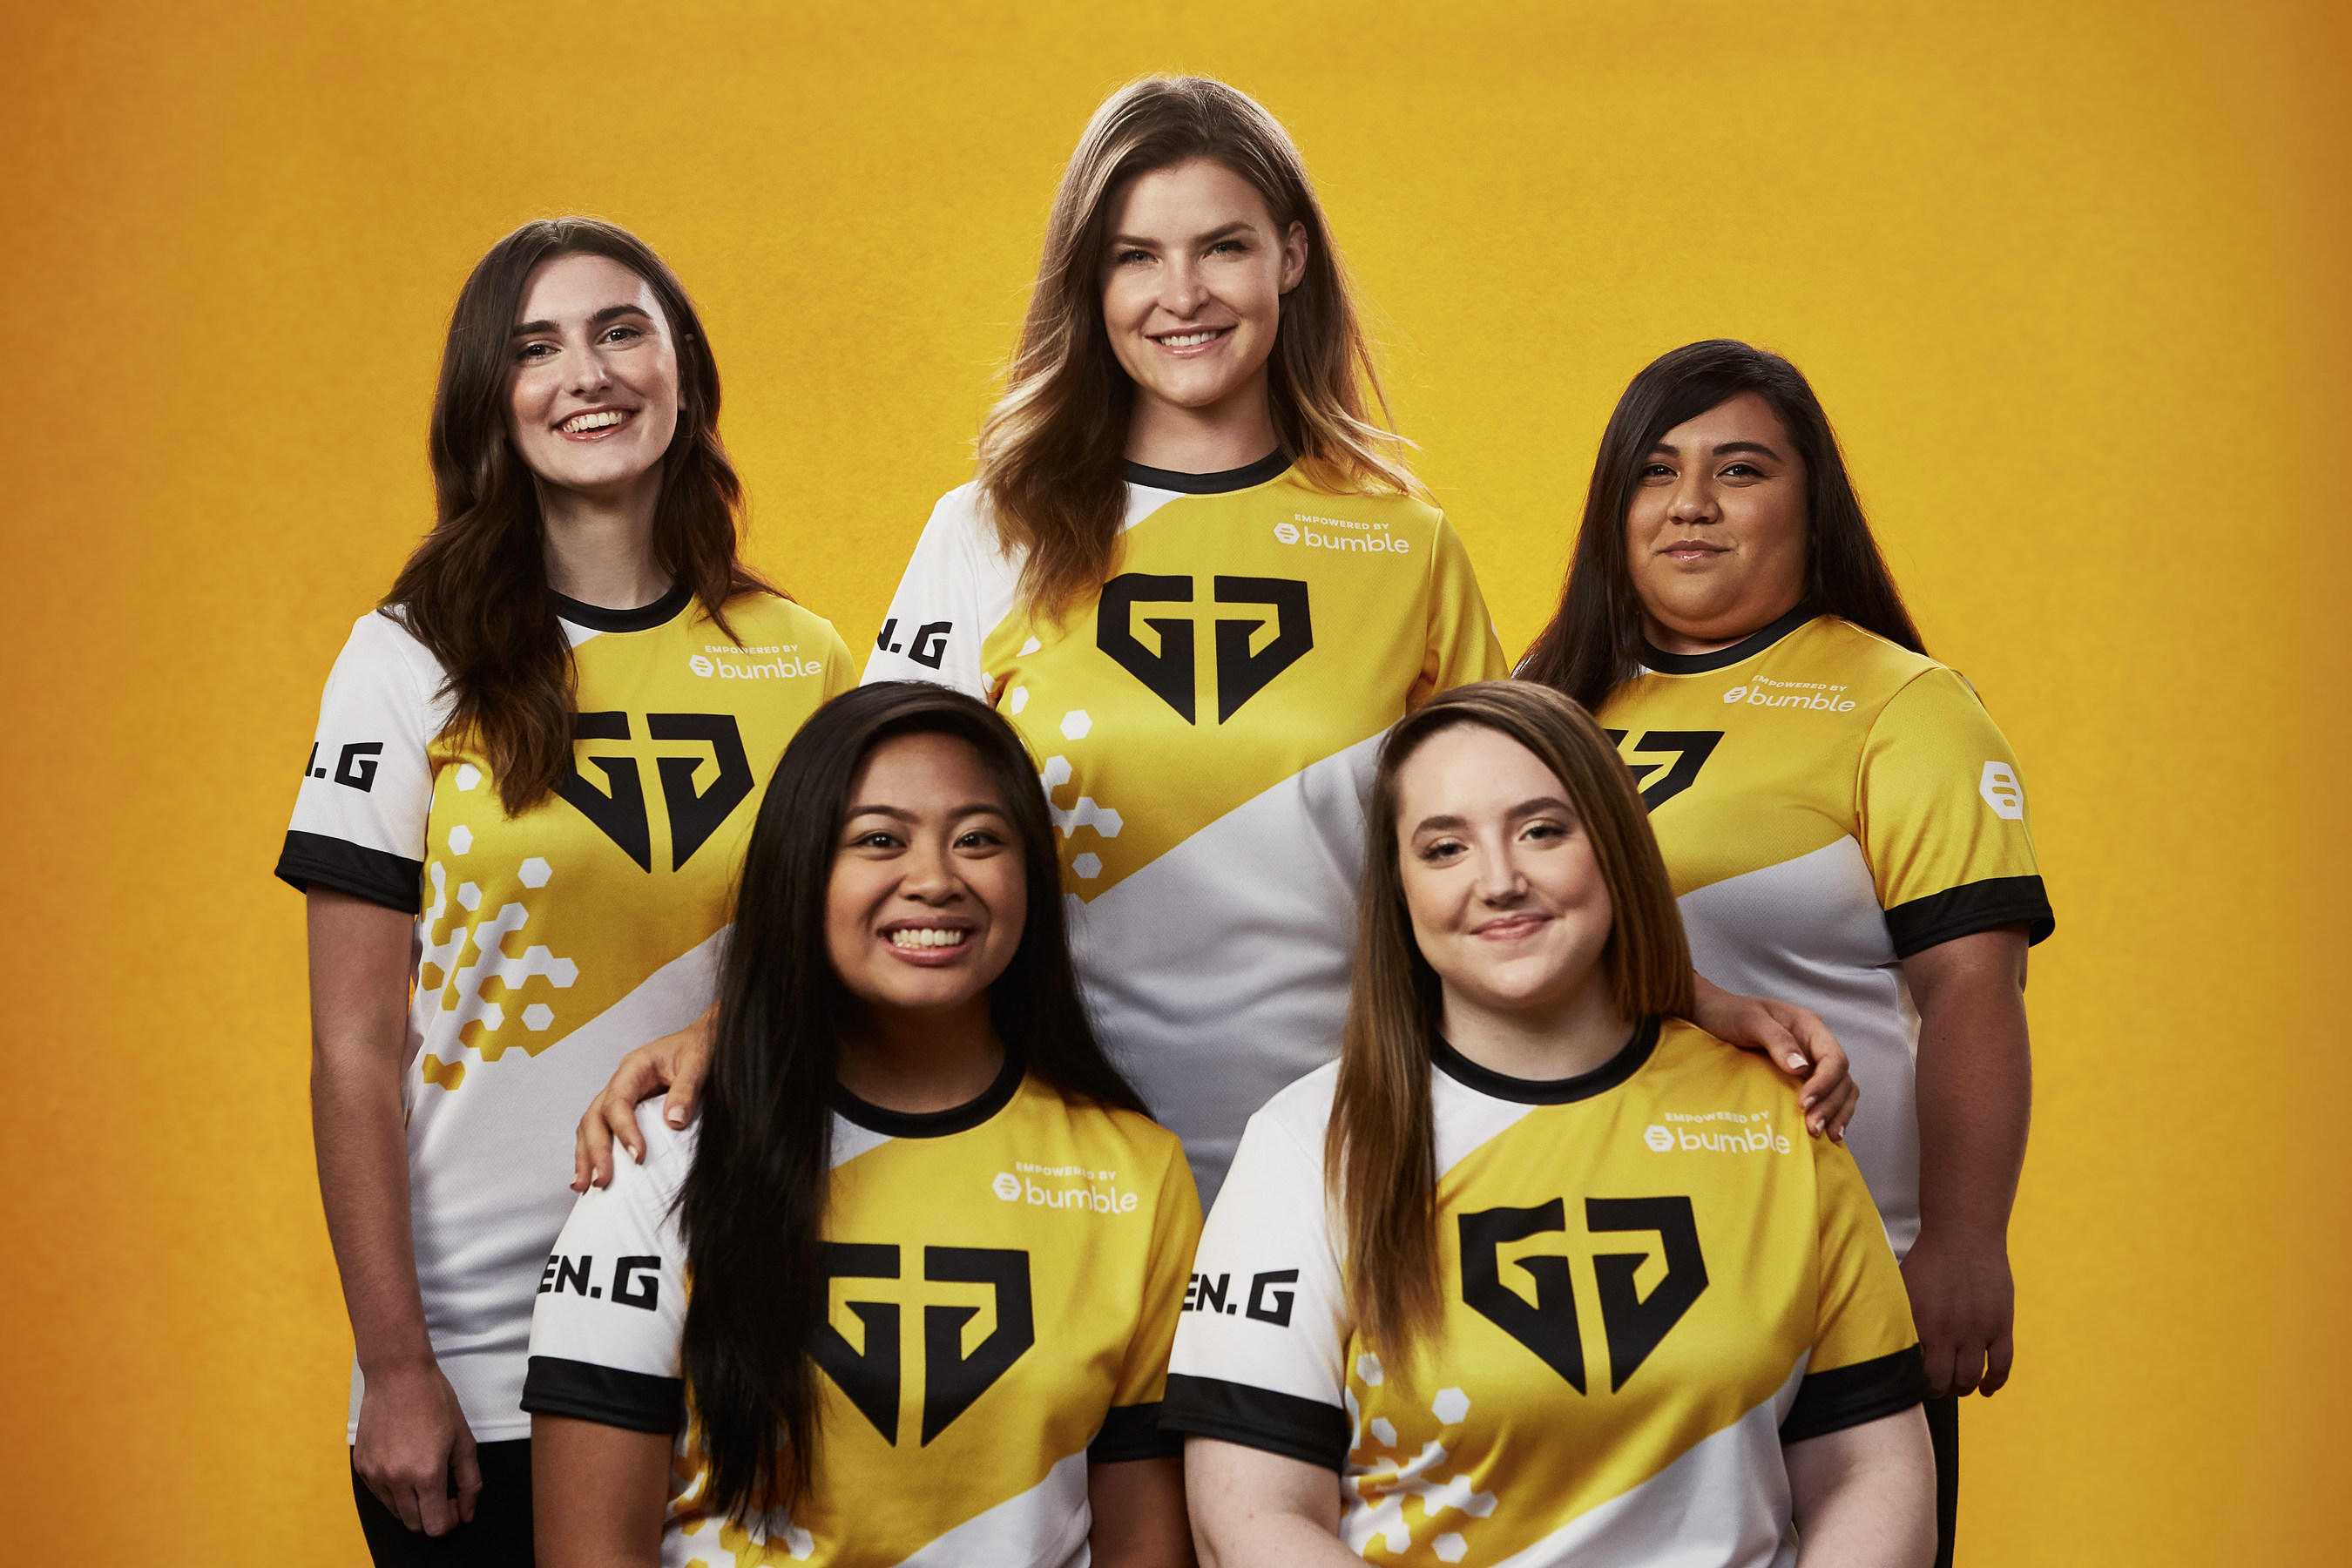 'Team Bumble' Partners with Caffeine to Livestream Fortnite Gameplay